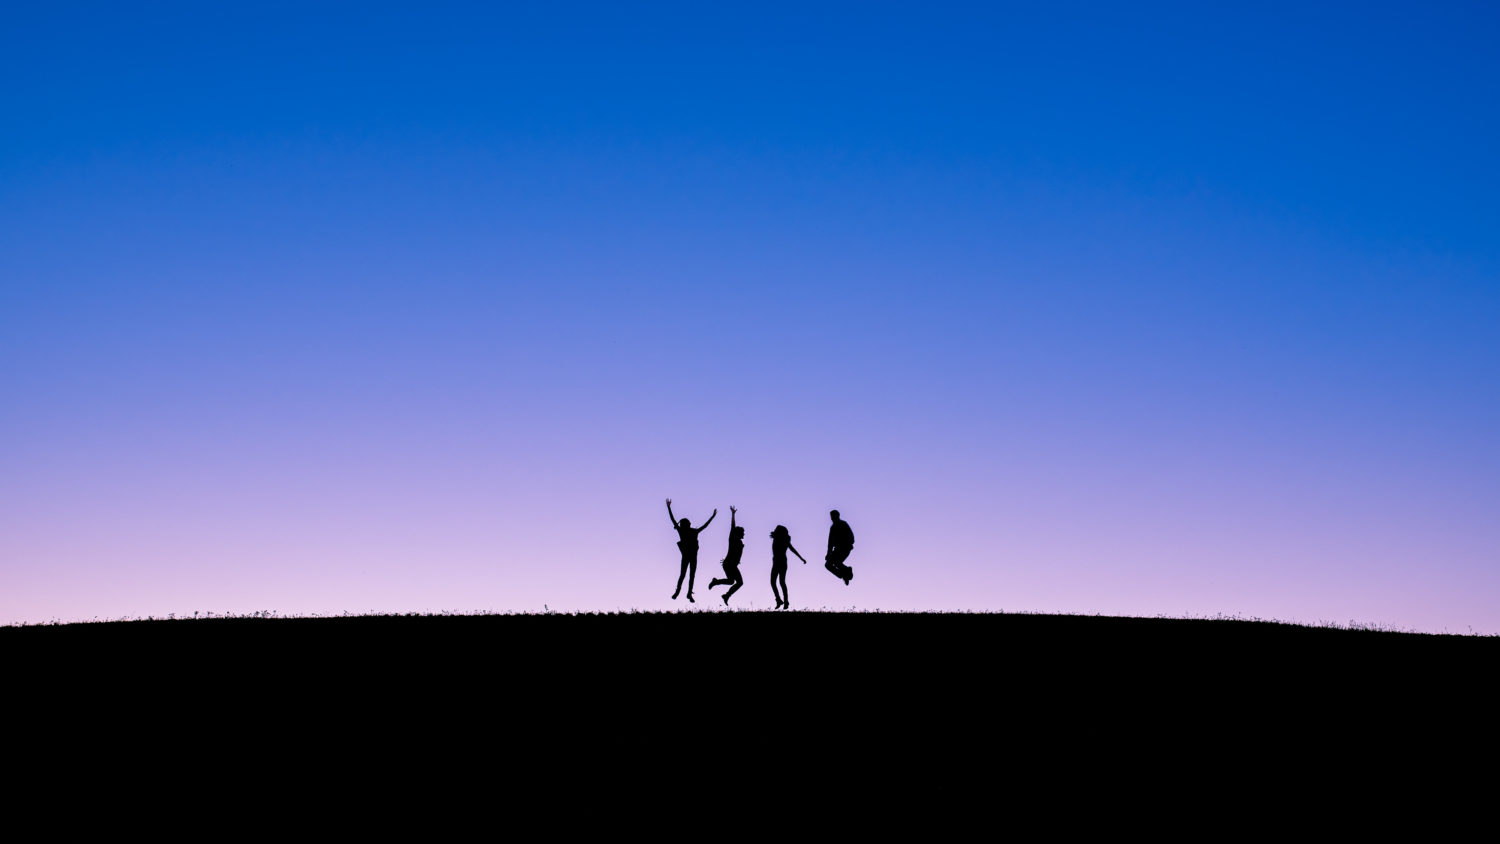 Minimalist silhouette family photos